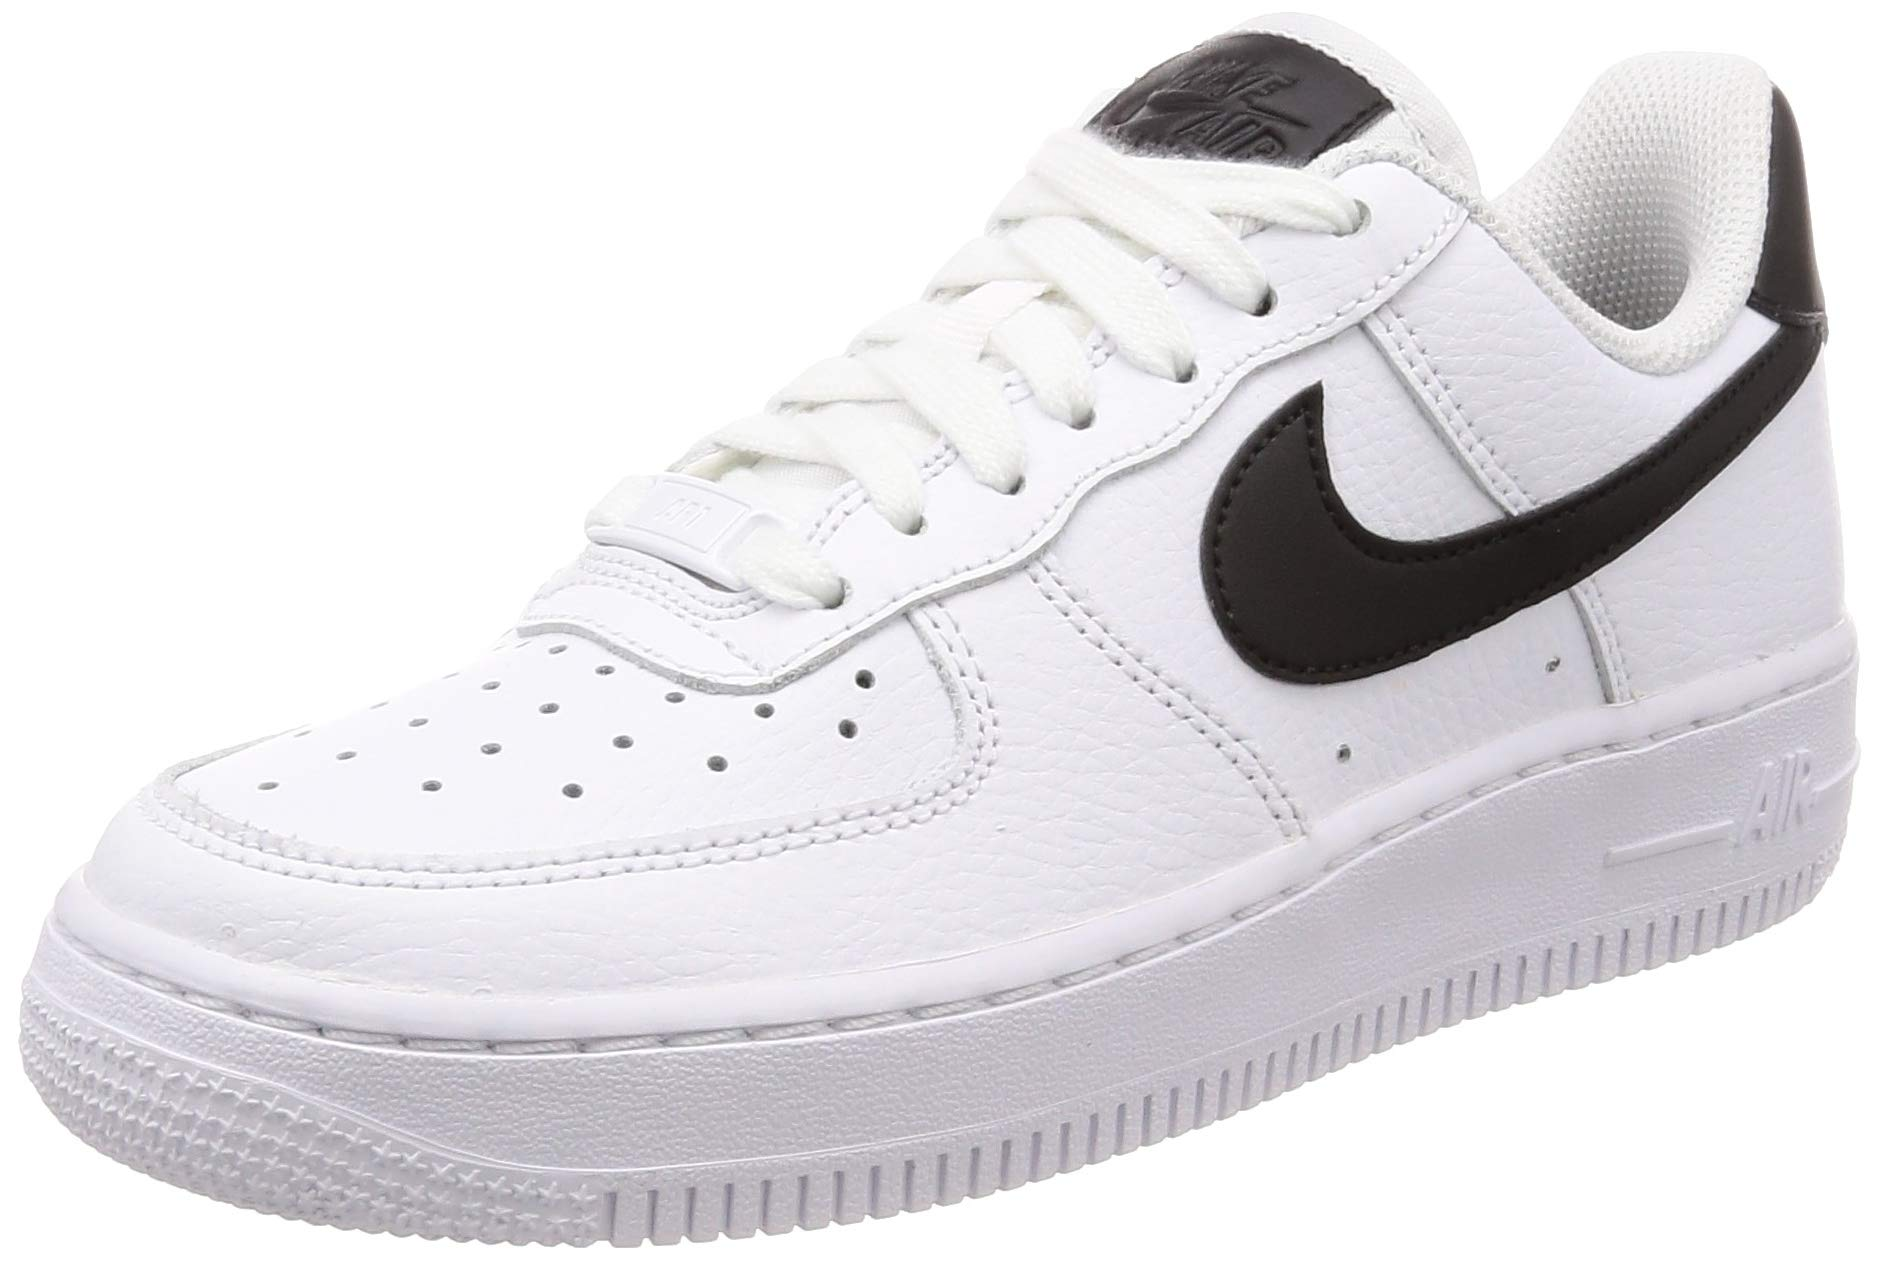 55790ad9 Nike Girls Air Force 1 LV8 (PS) Coral Stardust/Rusty Pink-White Sneaker  AH7529 600 (13.5 US Little Kid)